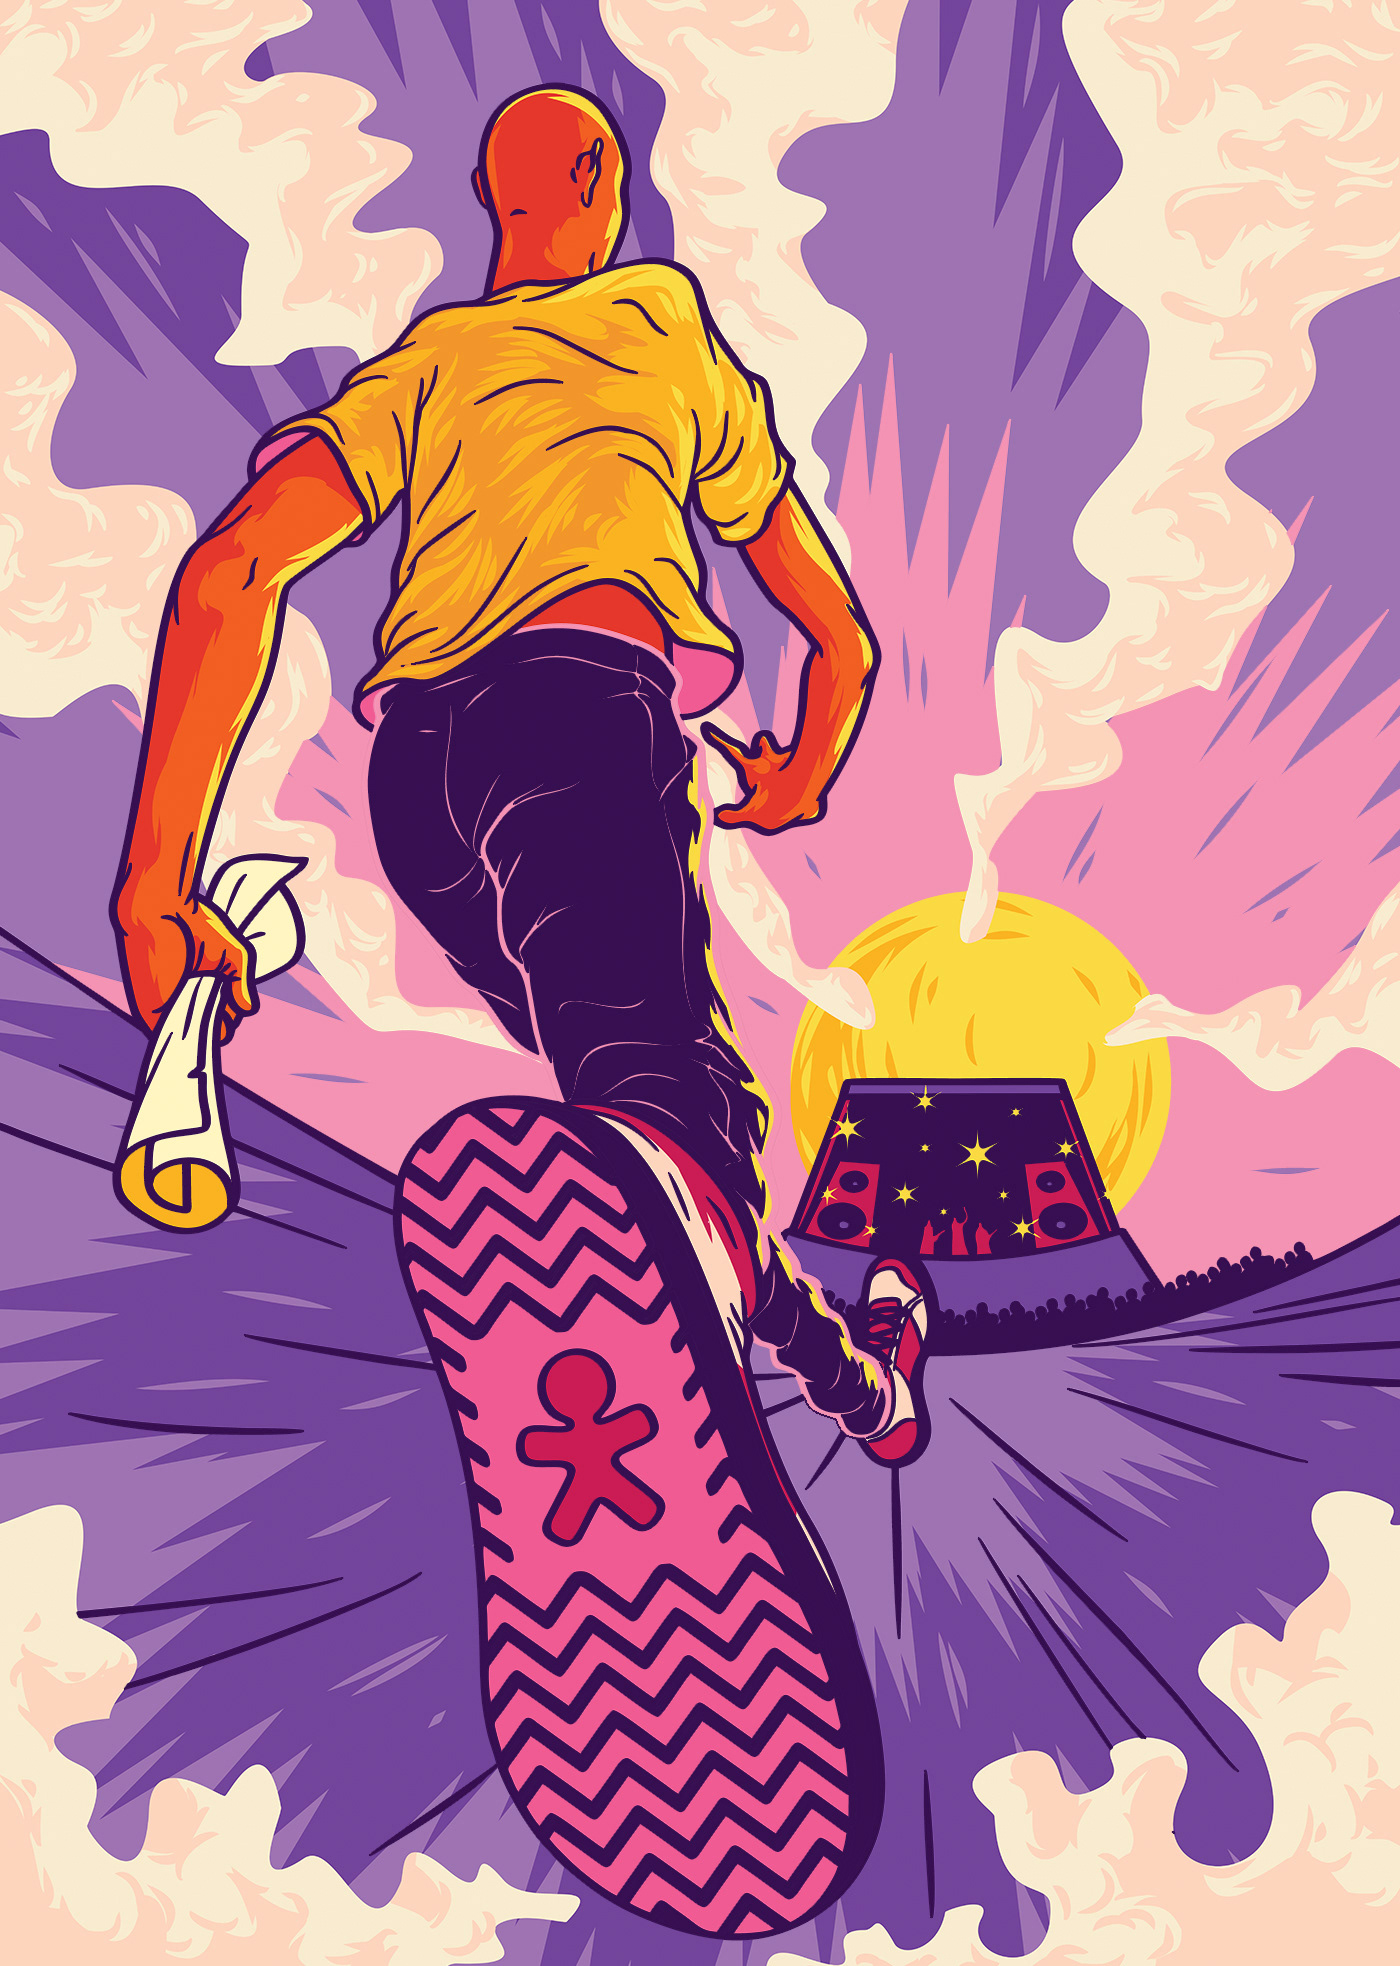 ILLUSTRATION  music festival Rock n' Roll pop hits Hipster indie hip-hop Experience